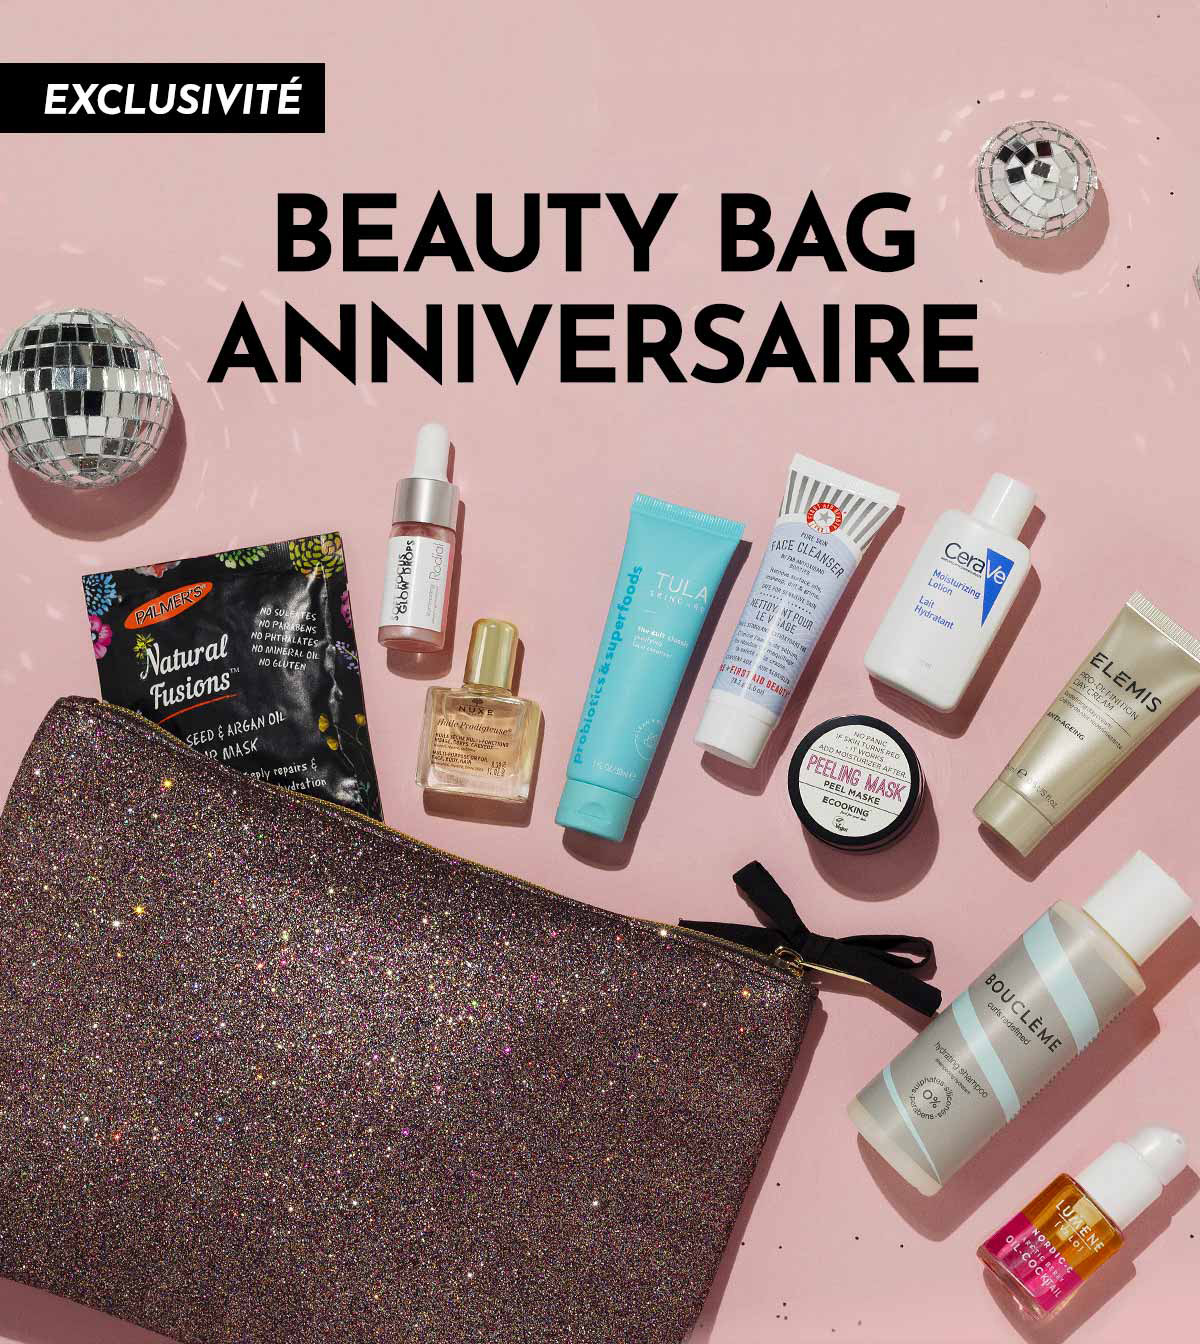 EXCLUSIVITÉ - BEAUTY BAG ANNIVERSAIRE